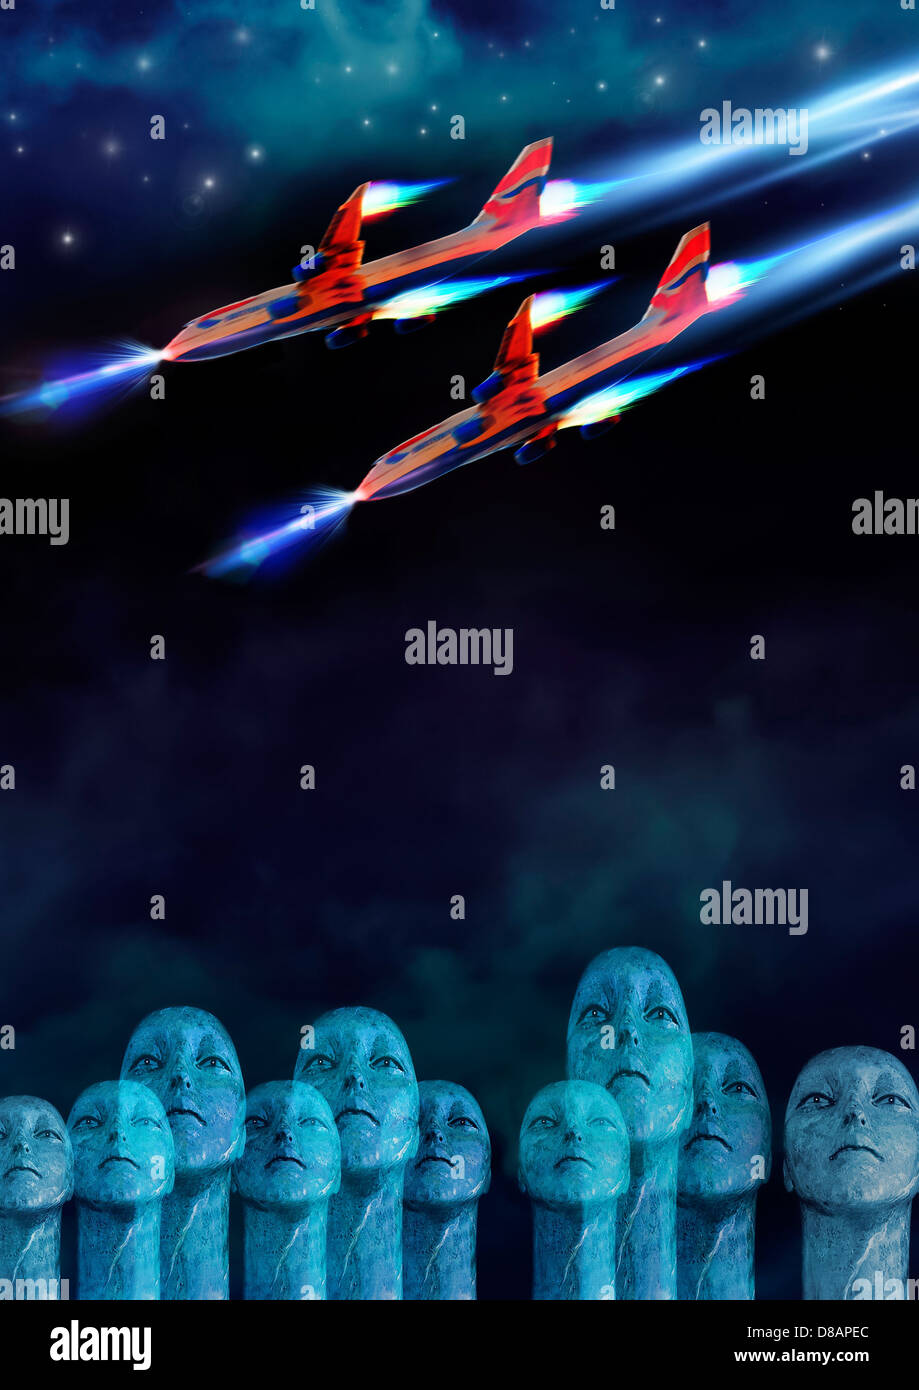 crowd of aliens looking up at fighter planes in night sky - Stock Image